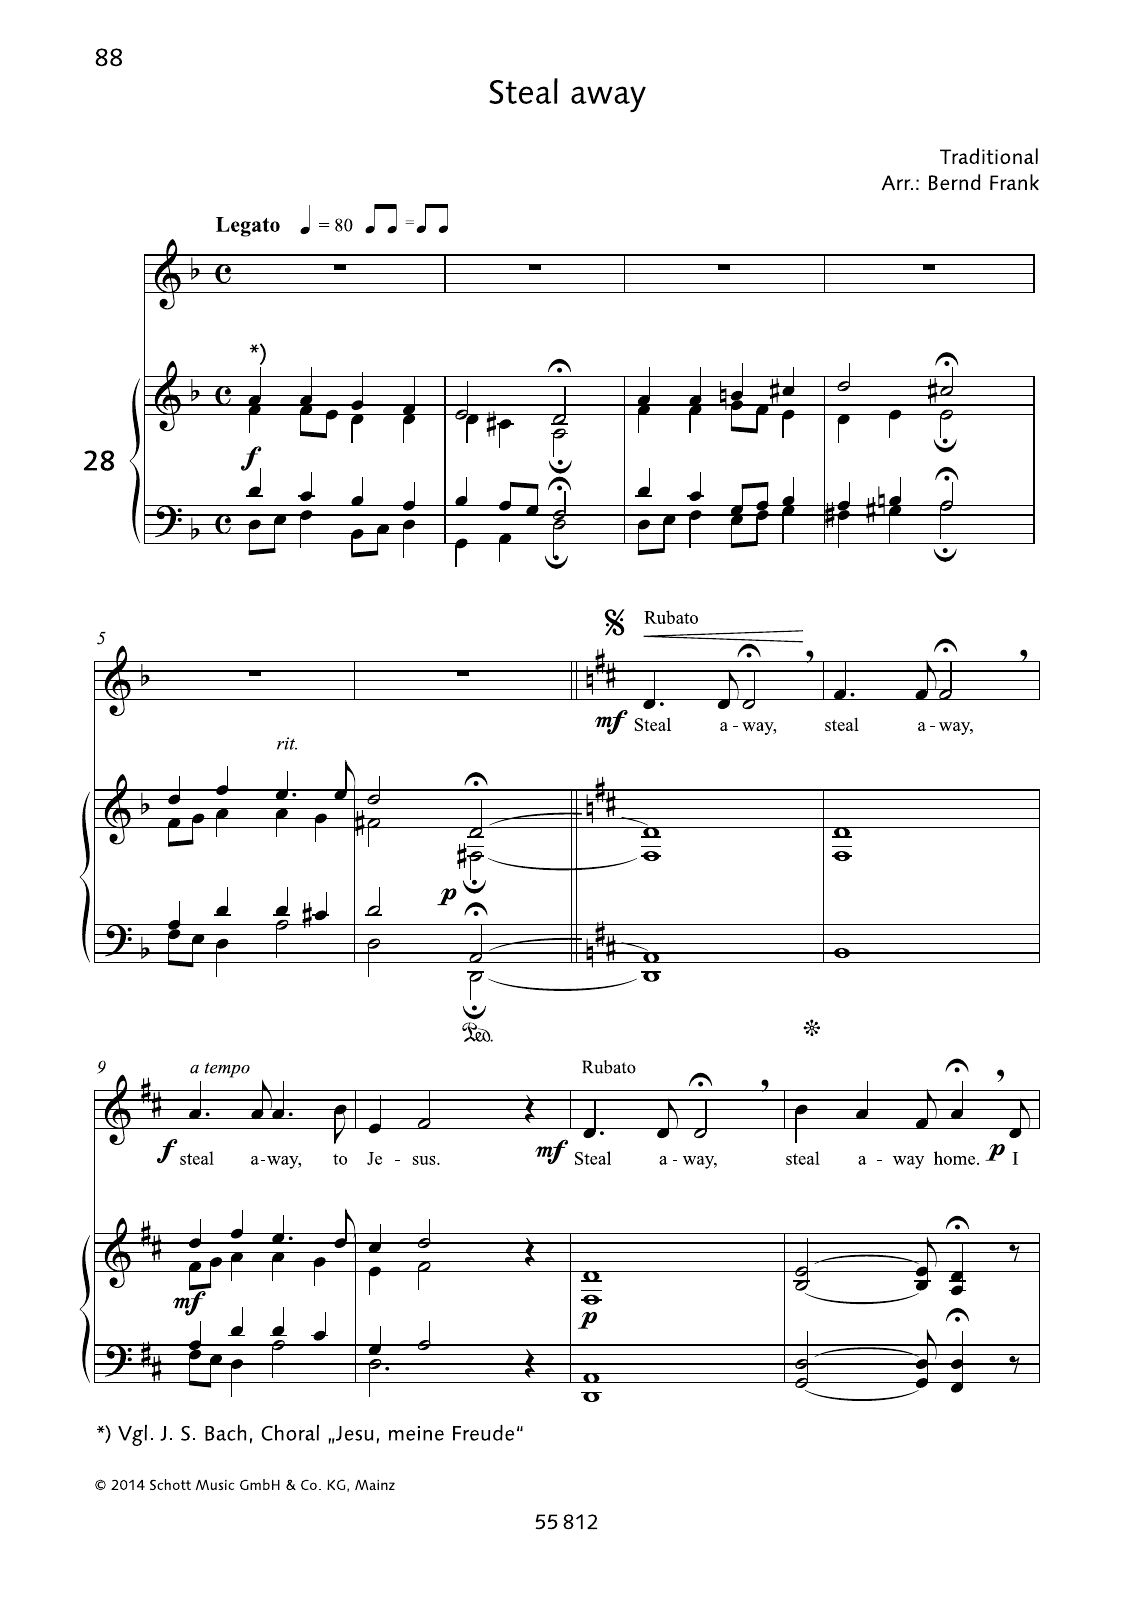 Bernd Frank Steal Away sheet music notes and chords. Download Printable PDF.